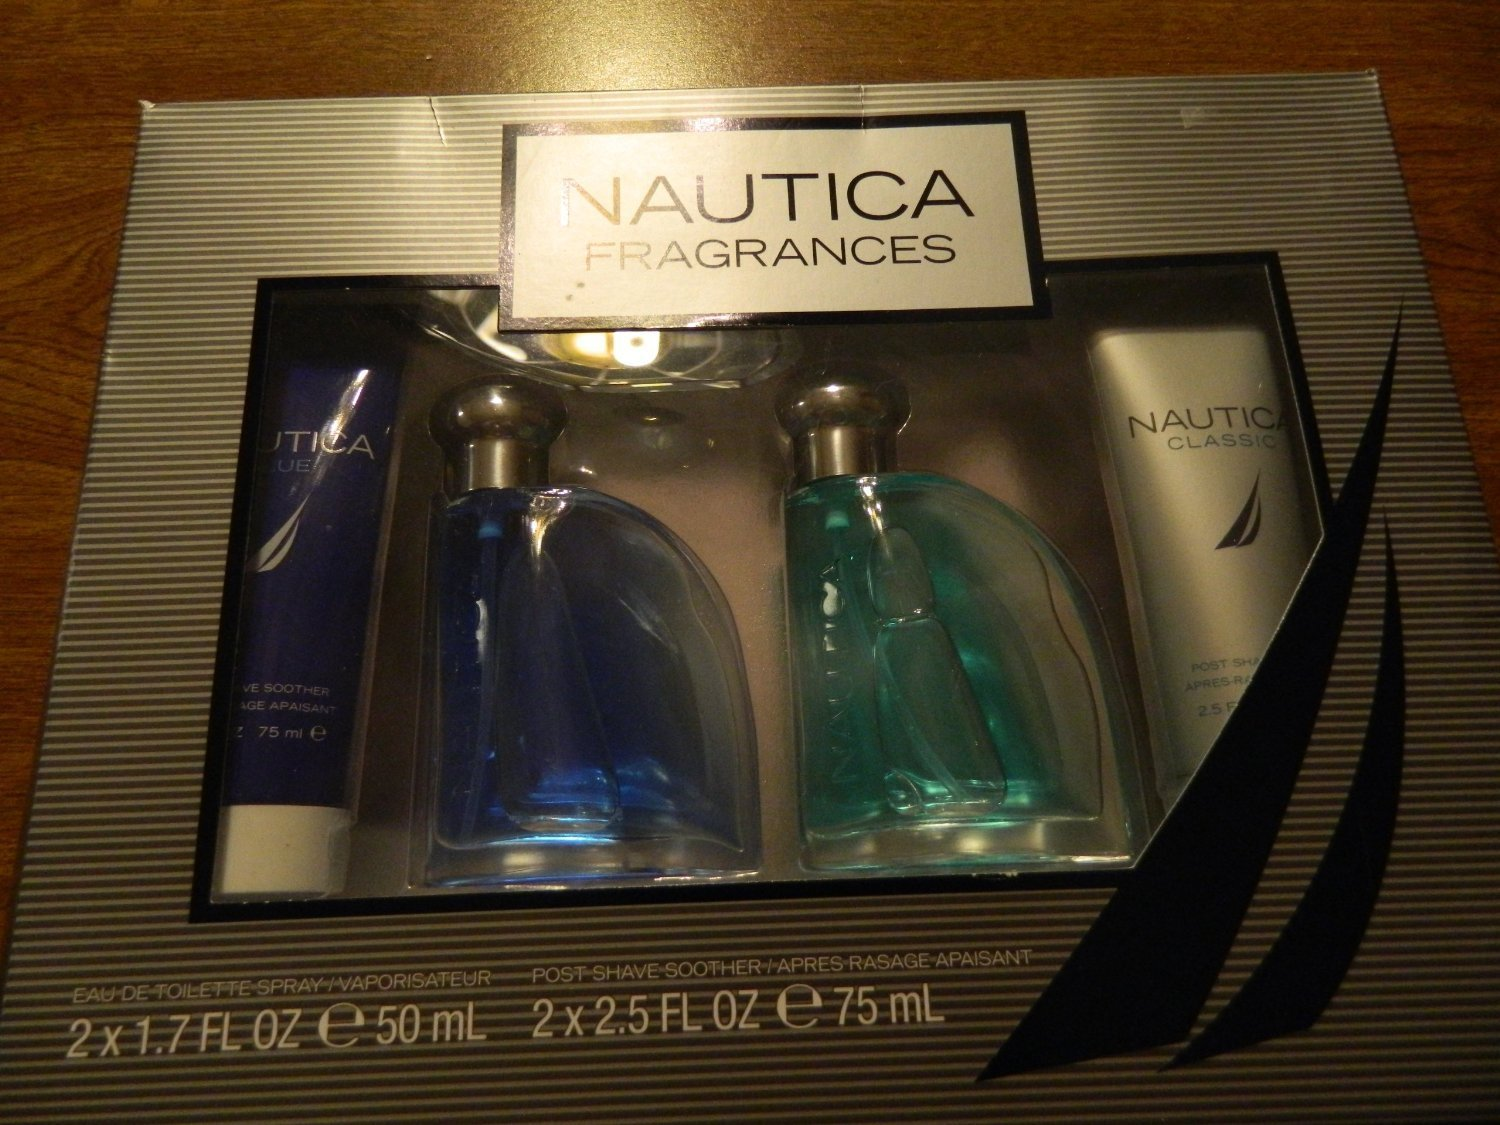 Nautica Fragrances 4 Piece Gift Set: 1 Nautica Blue Eau De Toilette Spray 1.7 Oz, 1 Nautica Classic Eau De Toilette Spray 1.7 Oz, 1 Nautica Blue Post Shave Soother 2.5 Oz, 1 Nautica Classic Post Shave Soother 2.5 Oz (2 Pack)